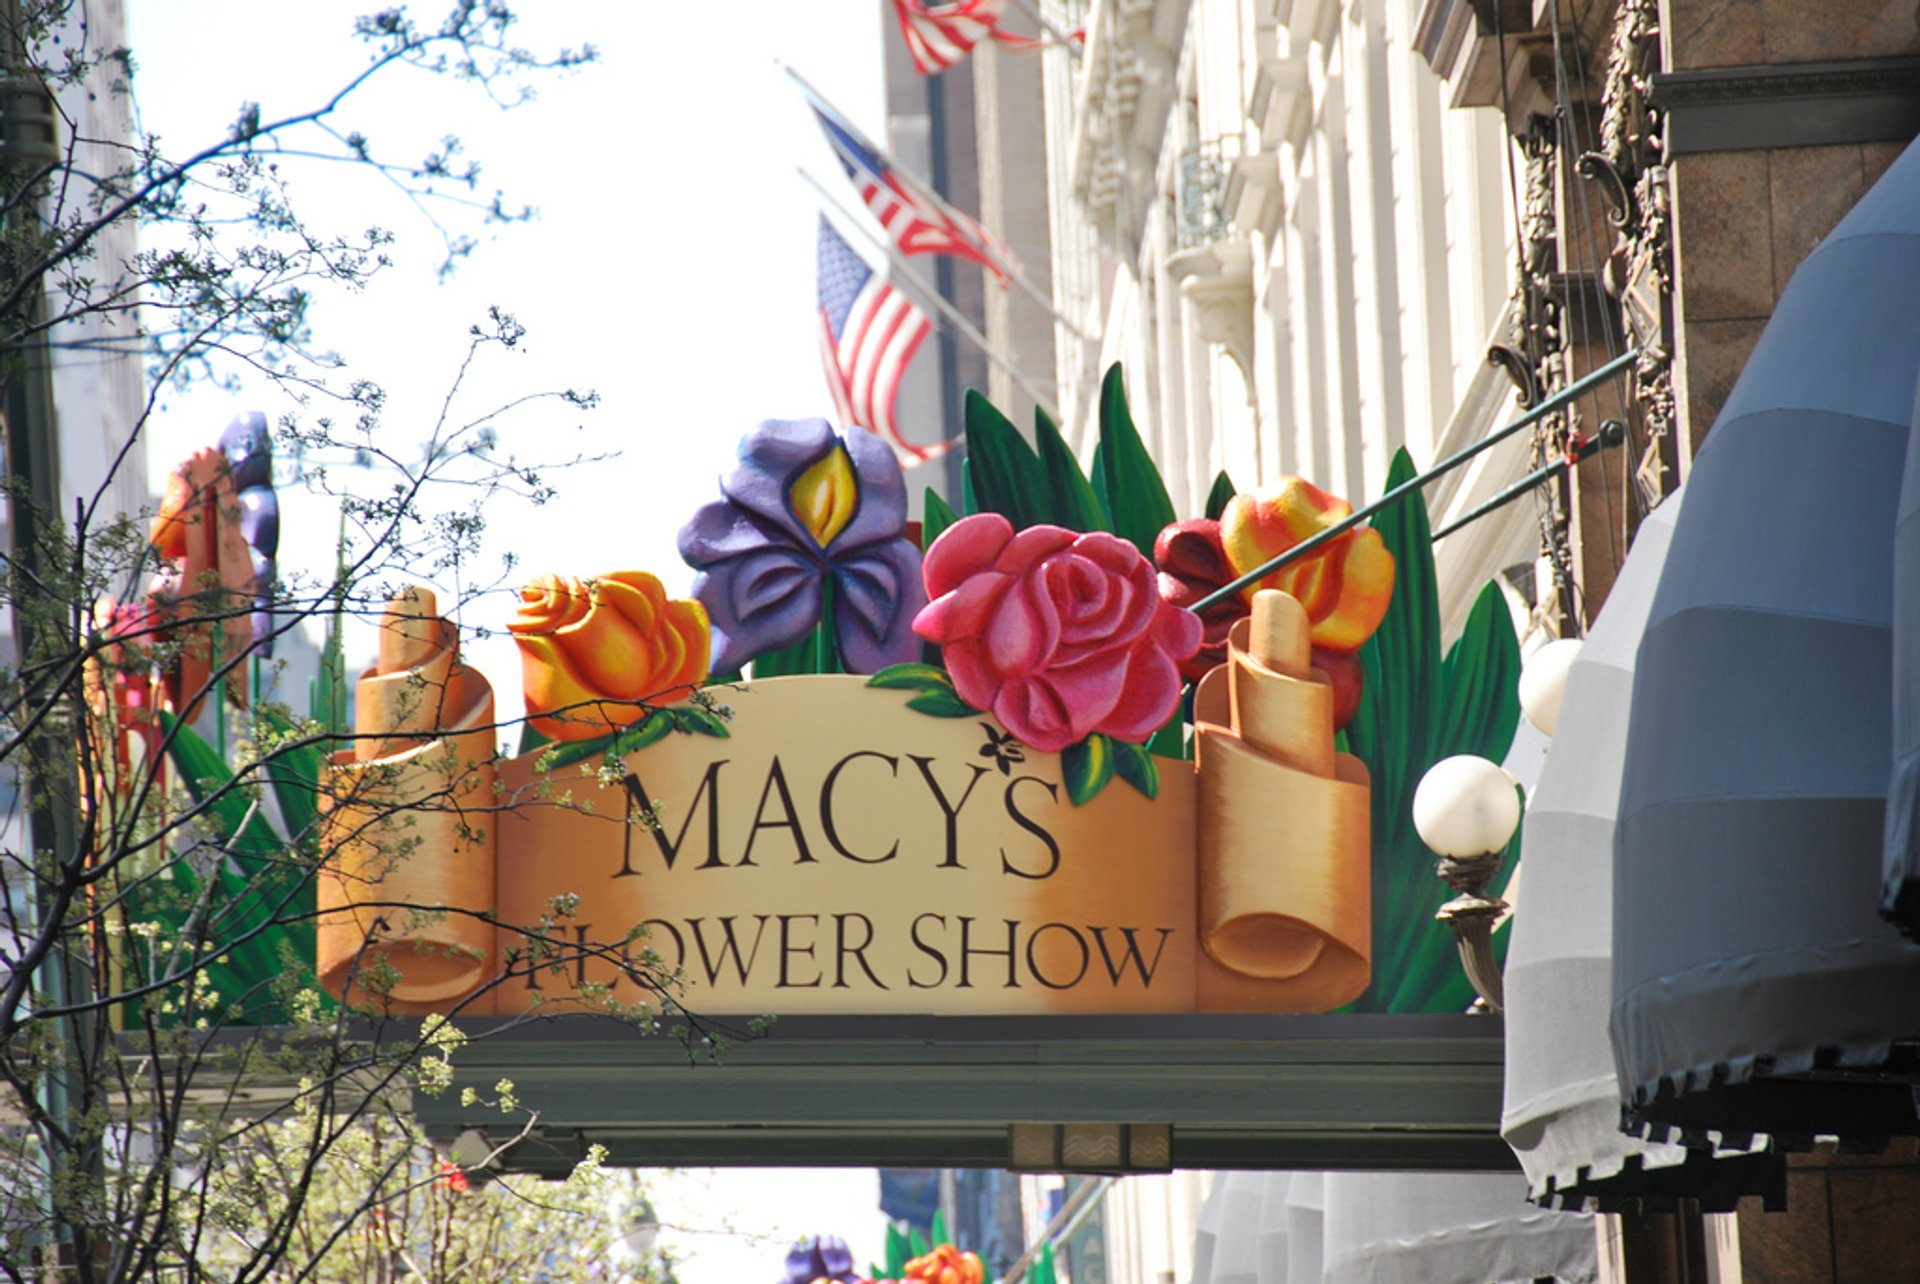 Macy's Flower Show in New York 2019 - Best Time